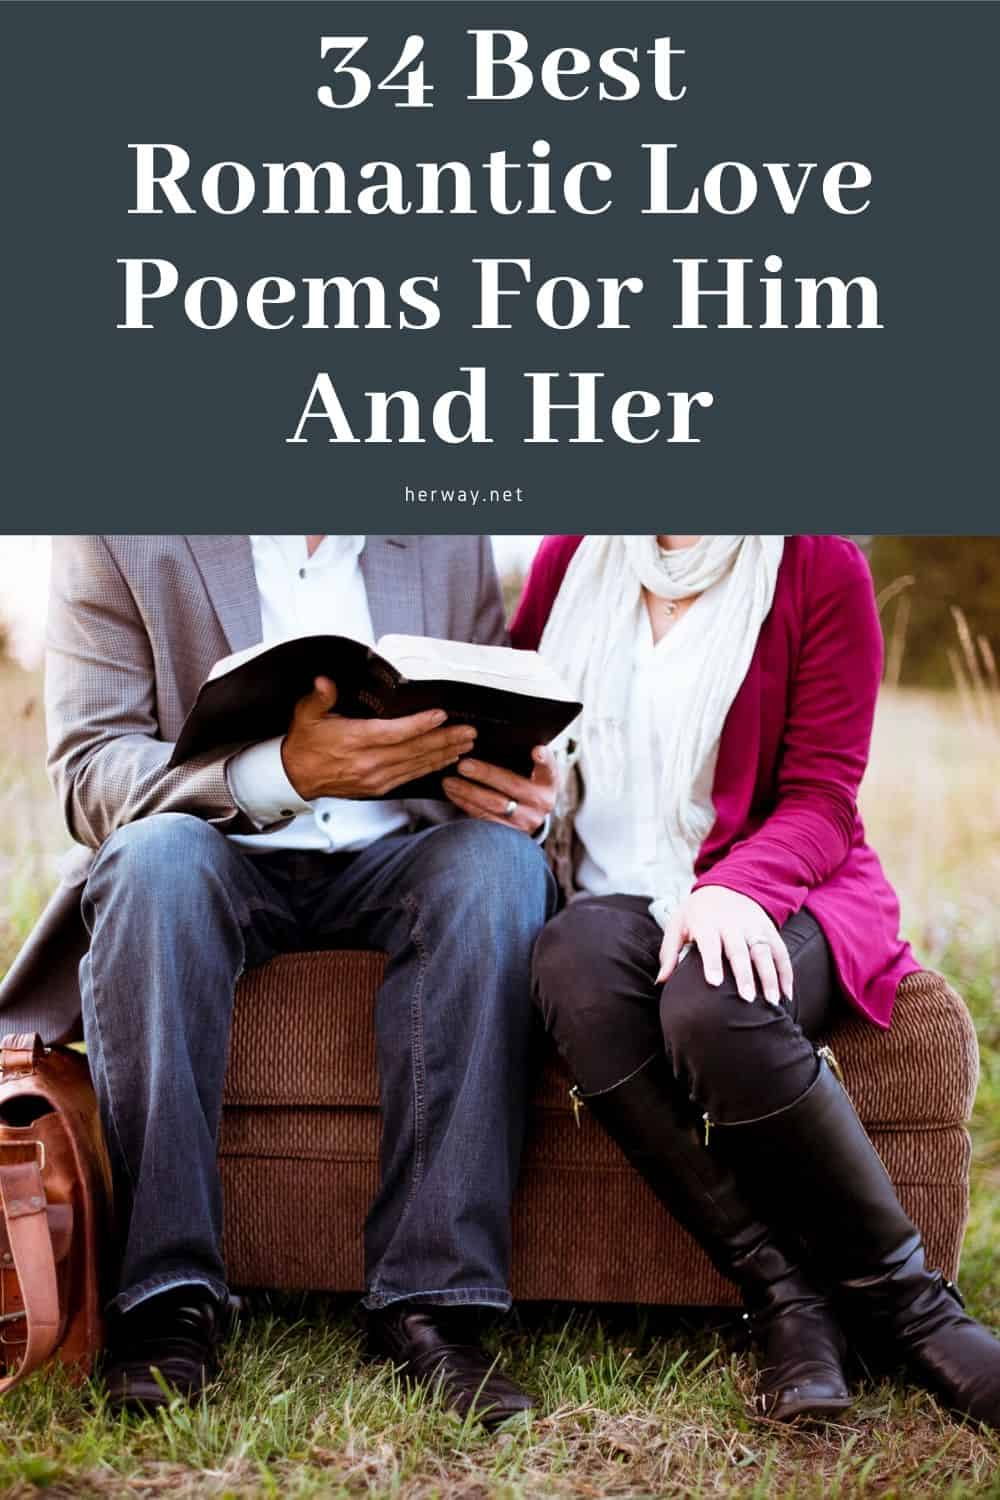 34 Best Romantic Love Poems For Him And Her